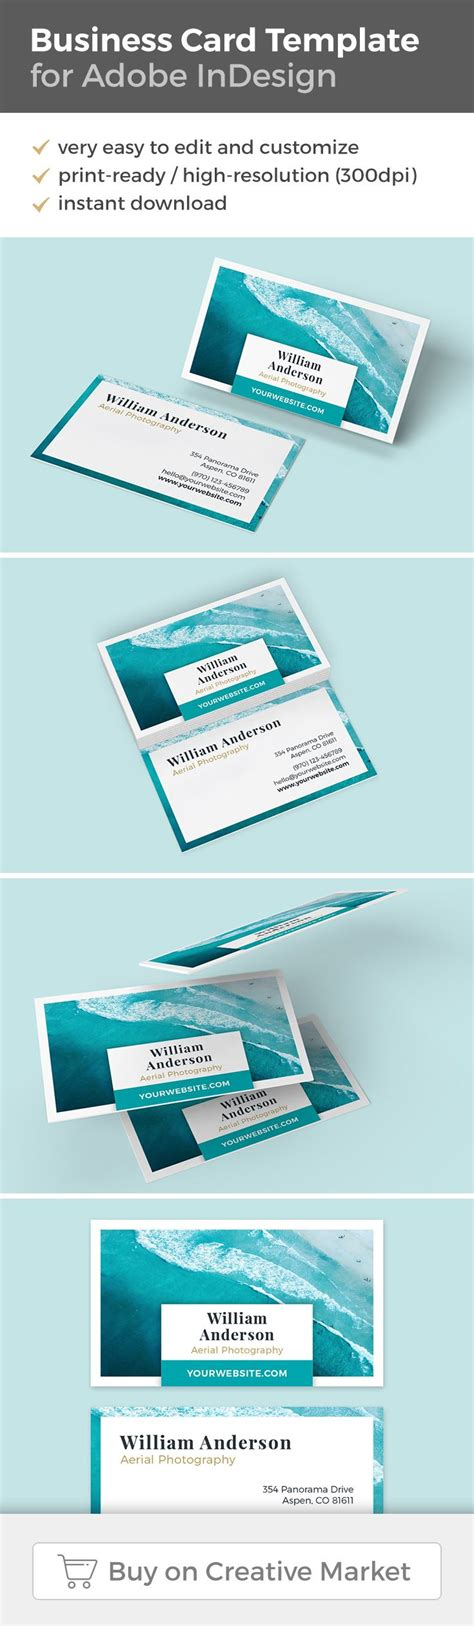 adobe indesign template two sided business card 25 gorgeous business cards ideas on